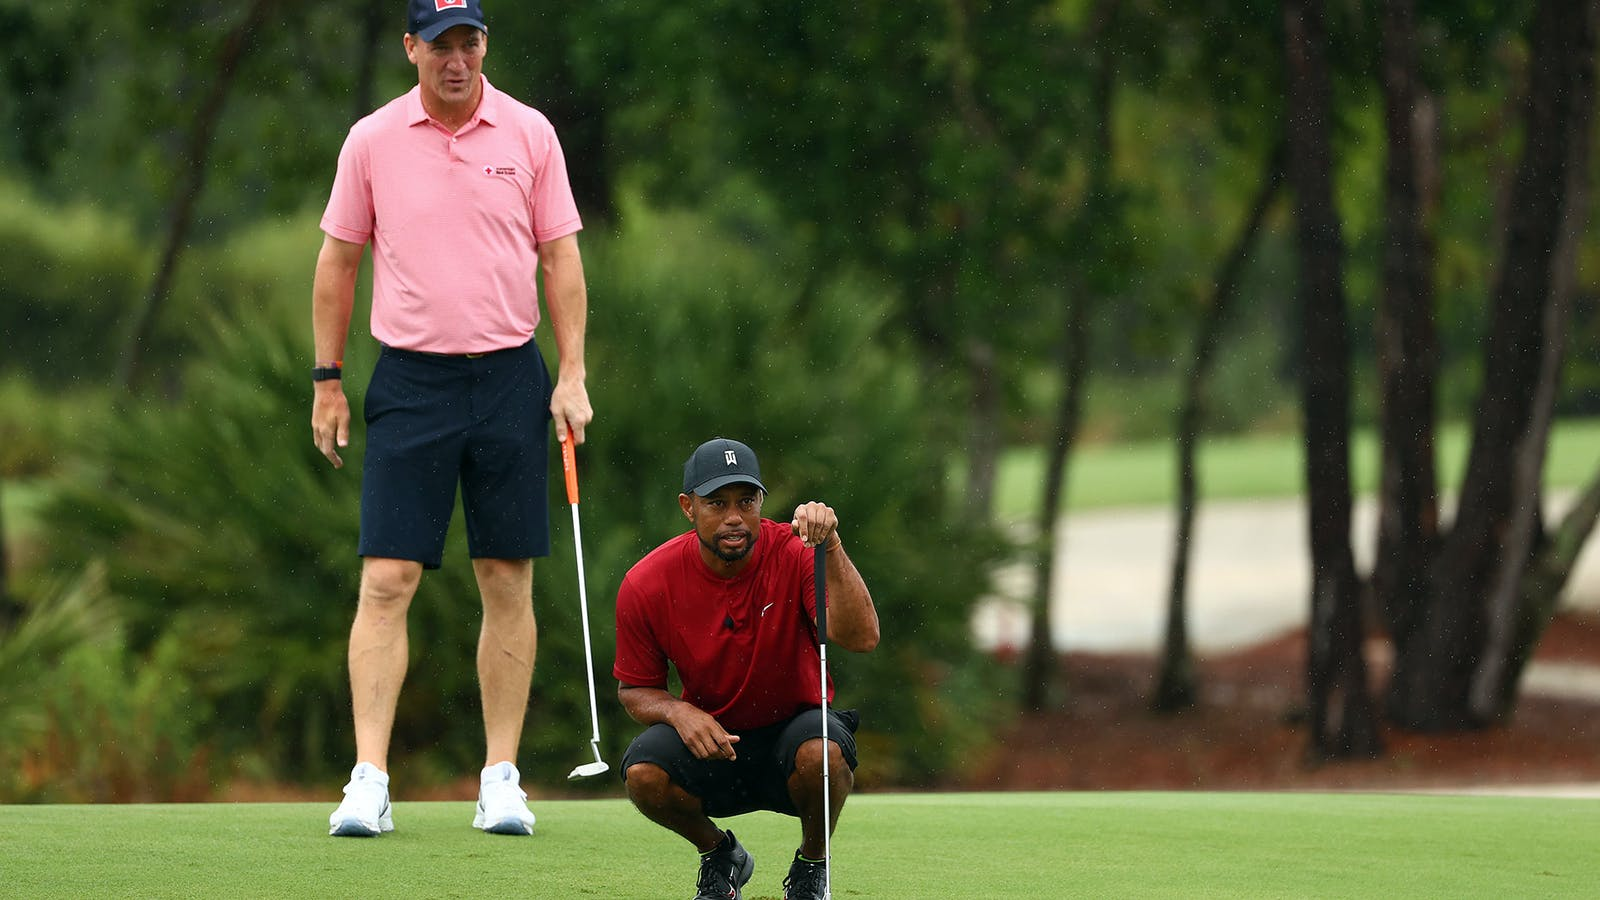 Tiger Woods and Peyton Manning during last month's charity tournament that drew heavy betting. Photo by Getty Images/Mike Ehrmann